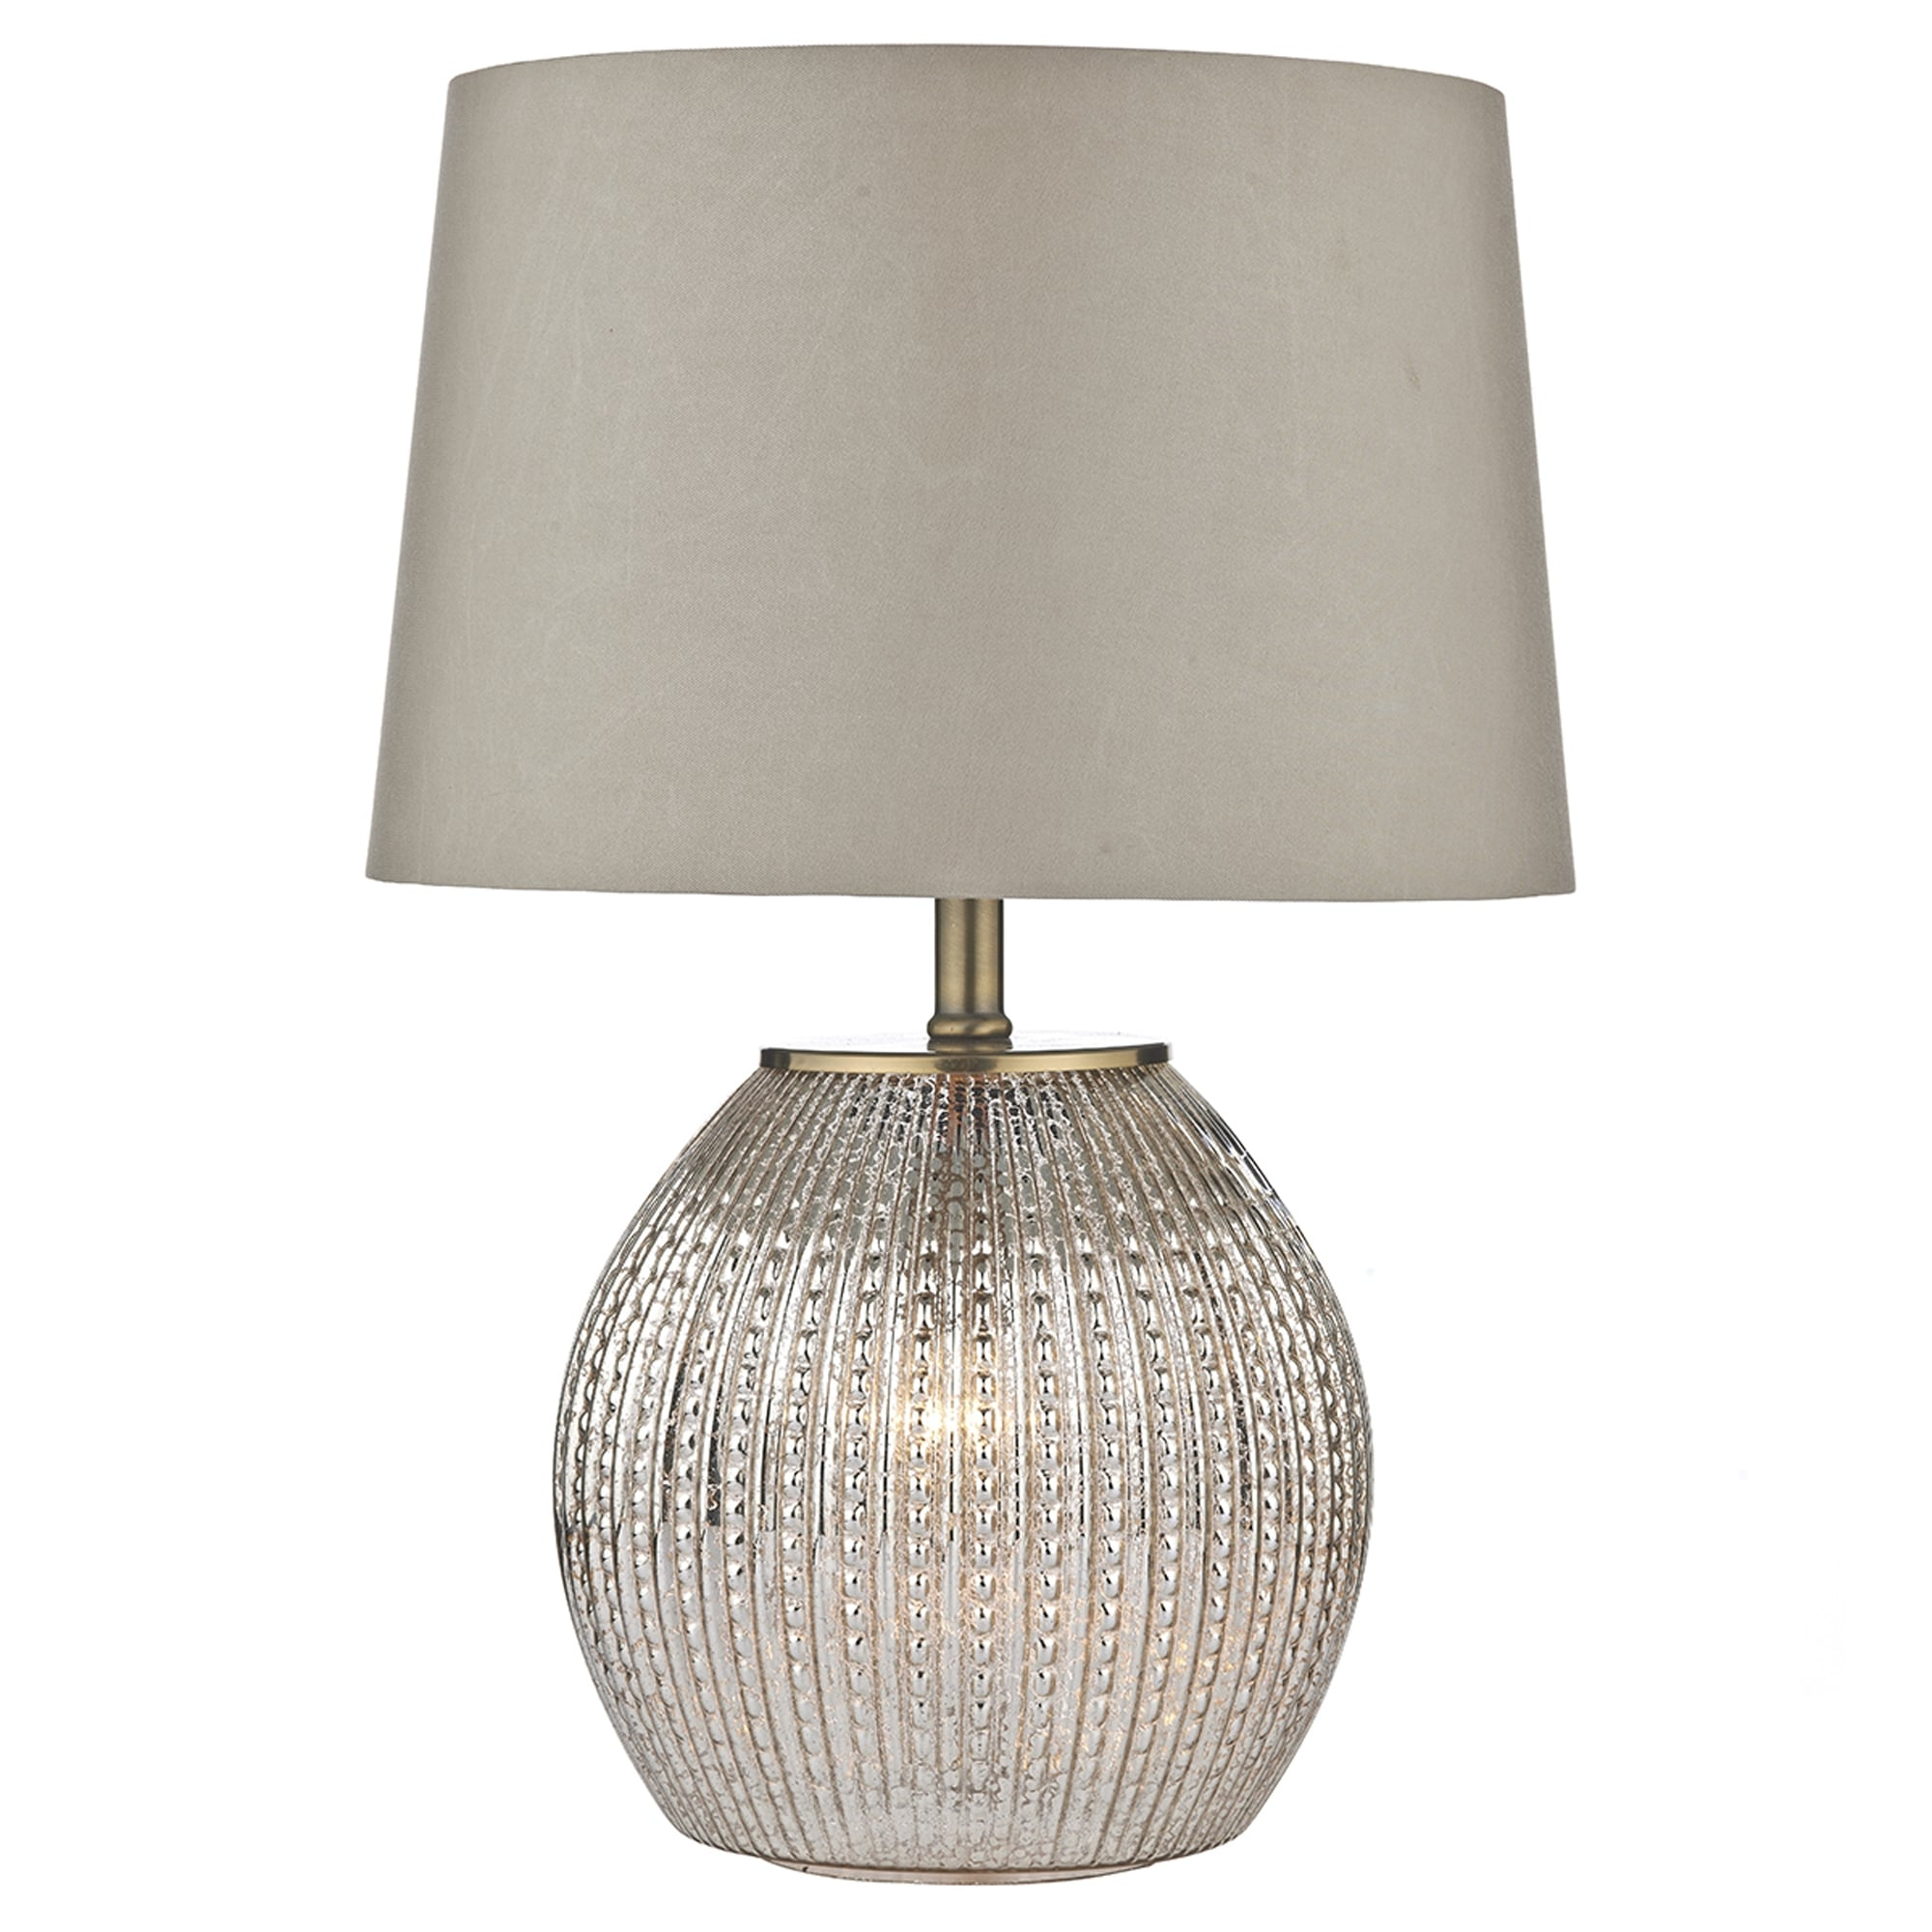 Dar Lighting Sonia Table Lamp with Illuminated Antique Silver Glass Base